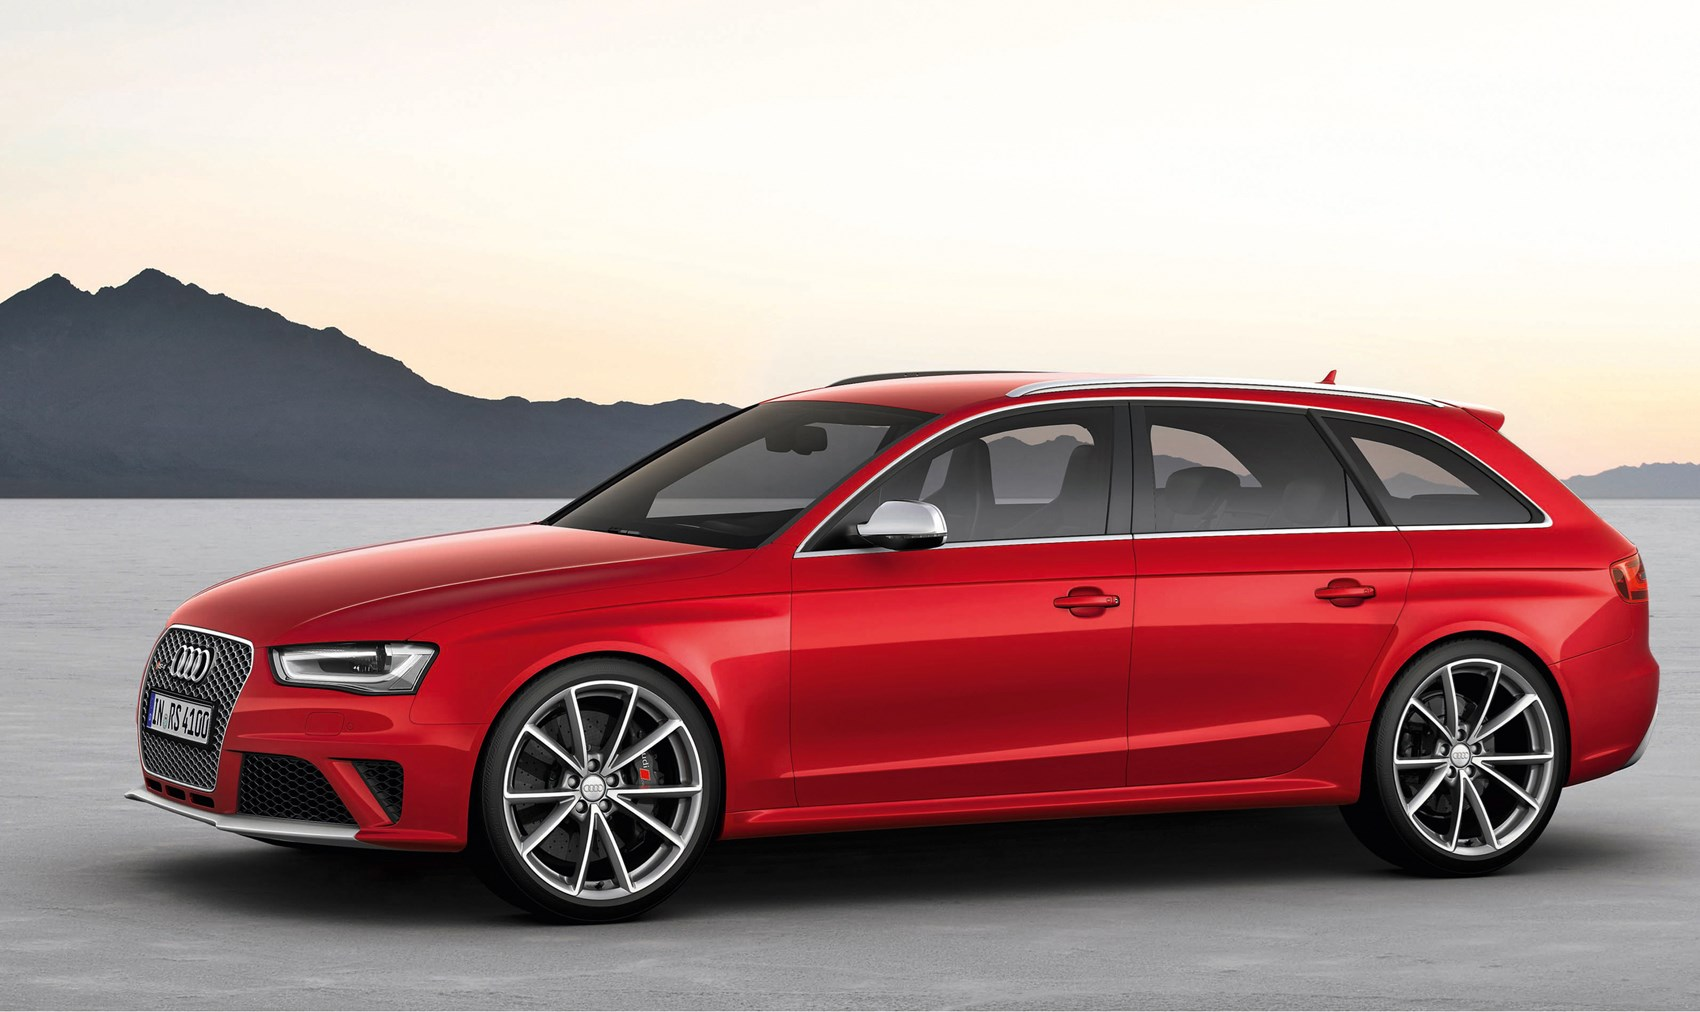 Used Audi A4 RS4 Avant (2012 - 2015) Review | Parkers